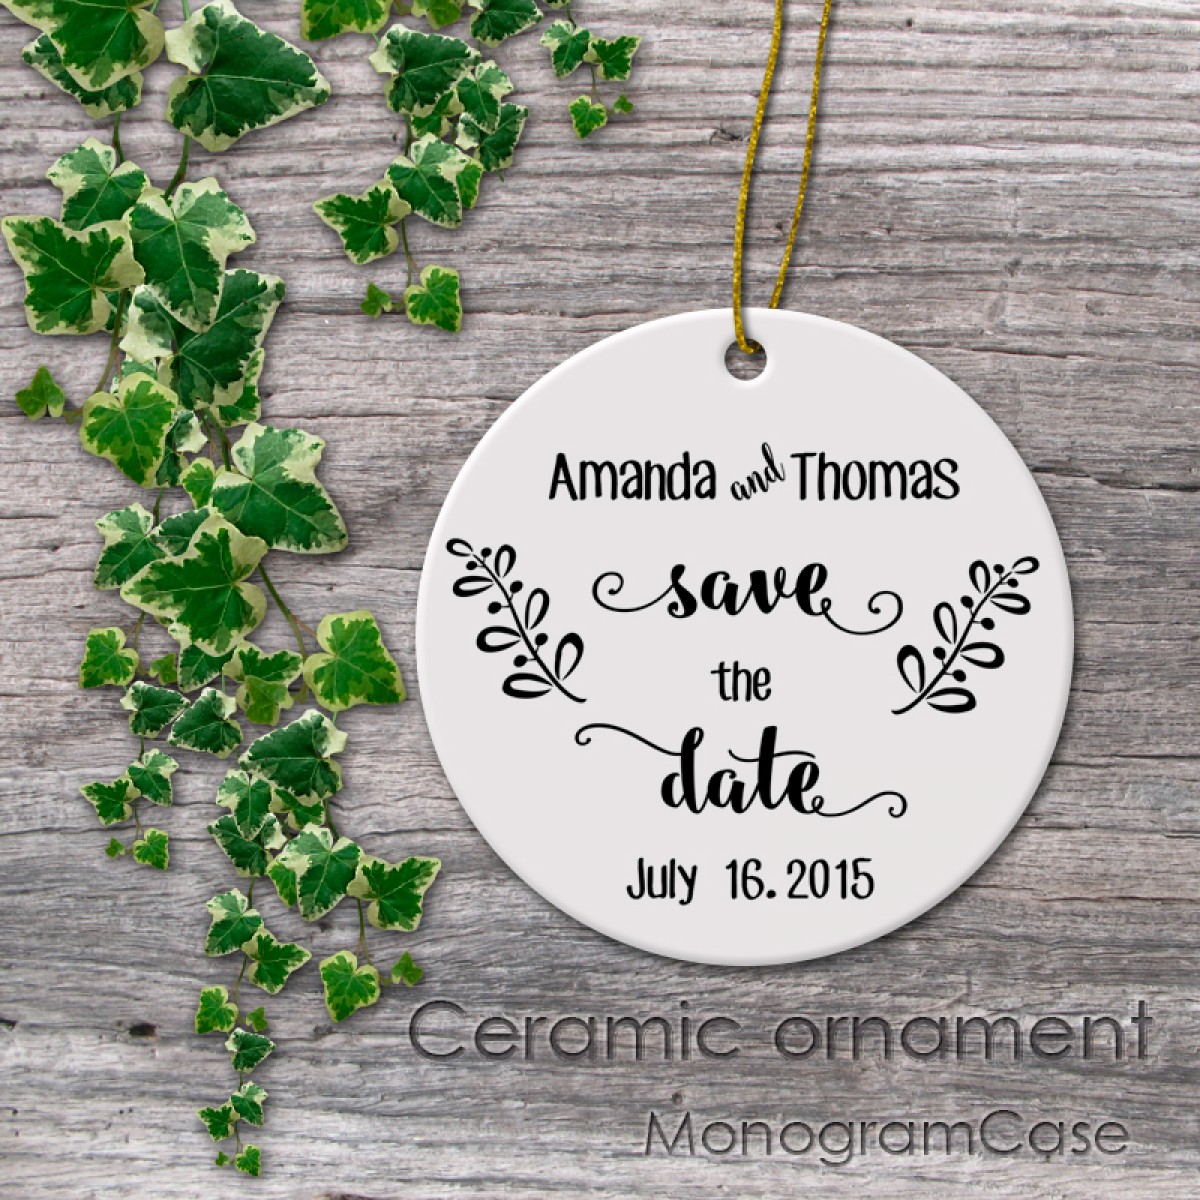 save the date wedding ceramic ornament gift monogramcase